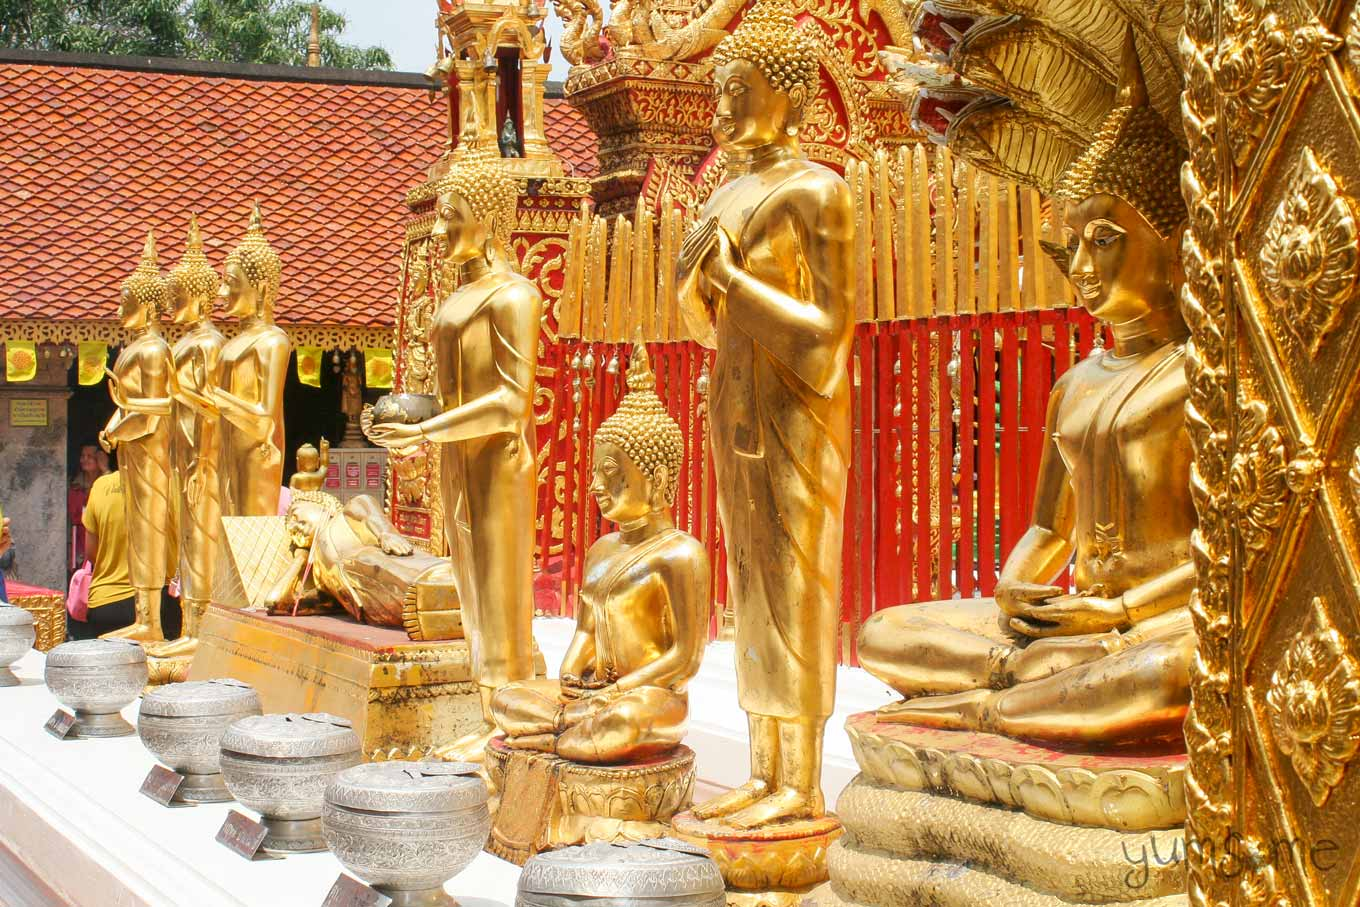 A row of golden Buddhas depicting various stages of Buddha's enlightenment.